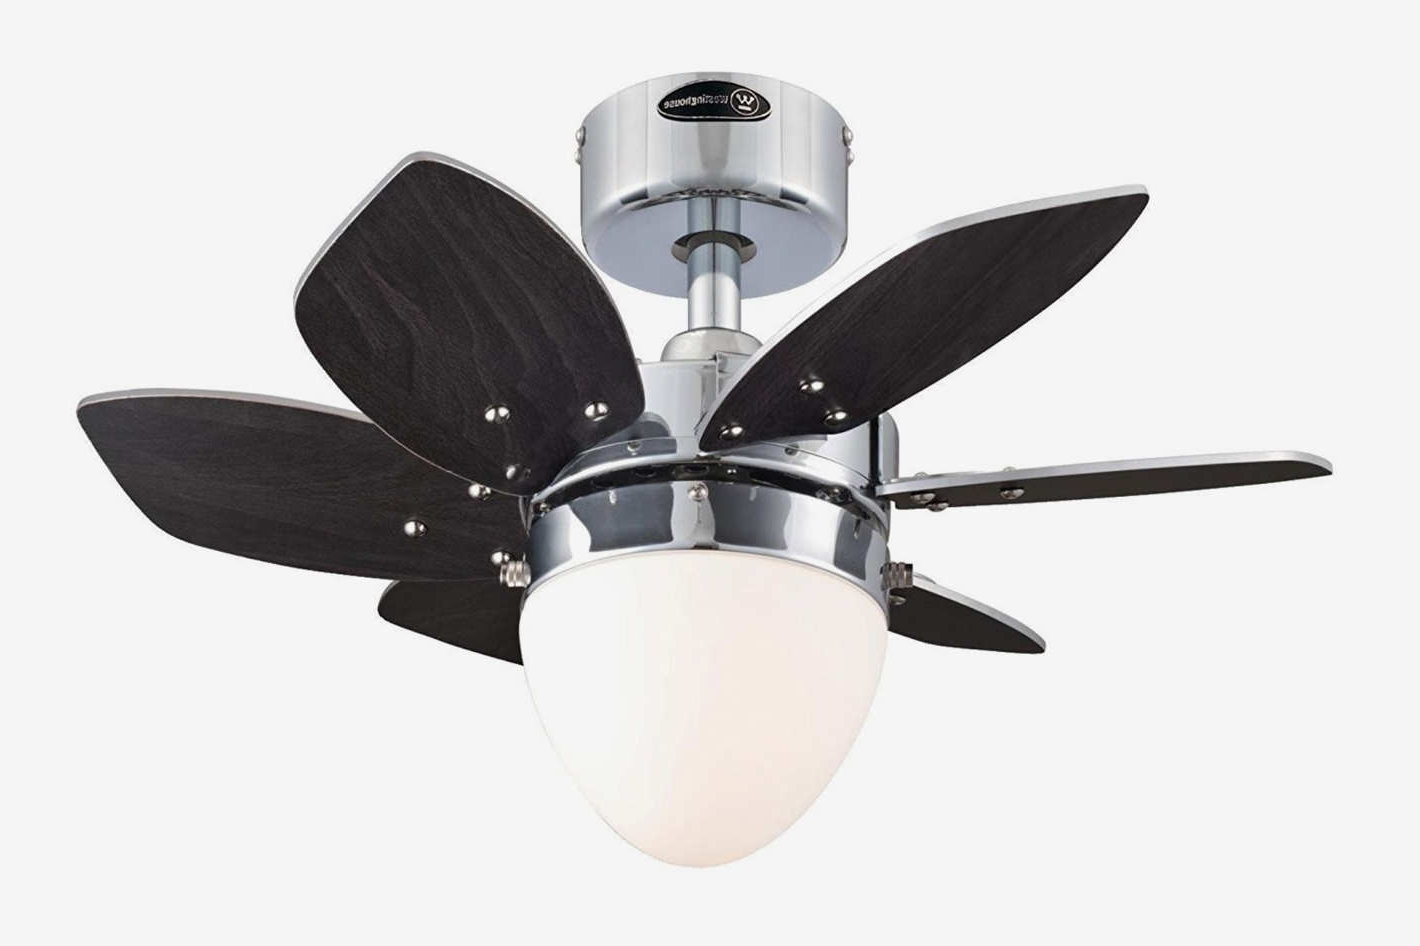 Current The 9 Best Ceiling Fans On Amazon 2018 Intended For Outdoor Ceiling Fans Under $ (View 2 of 20)